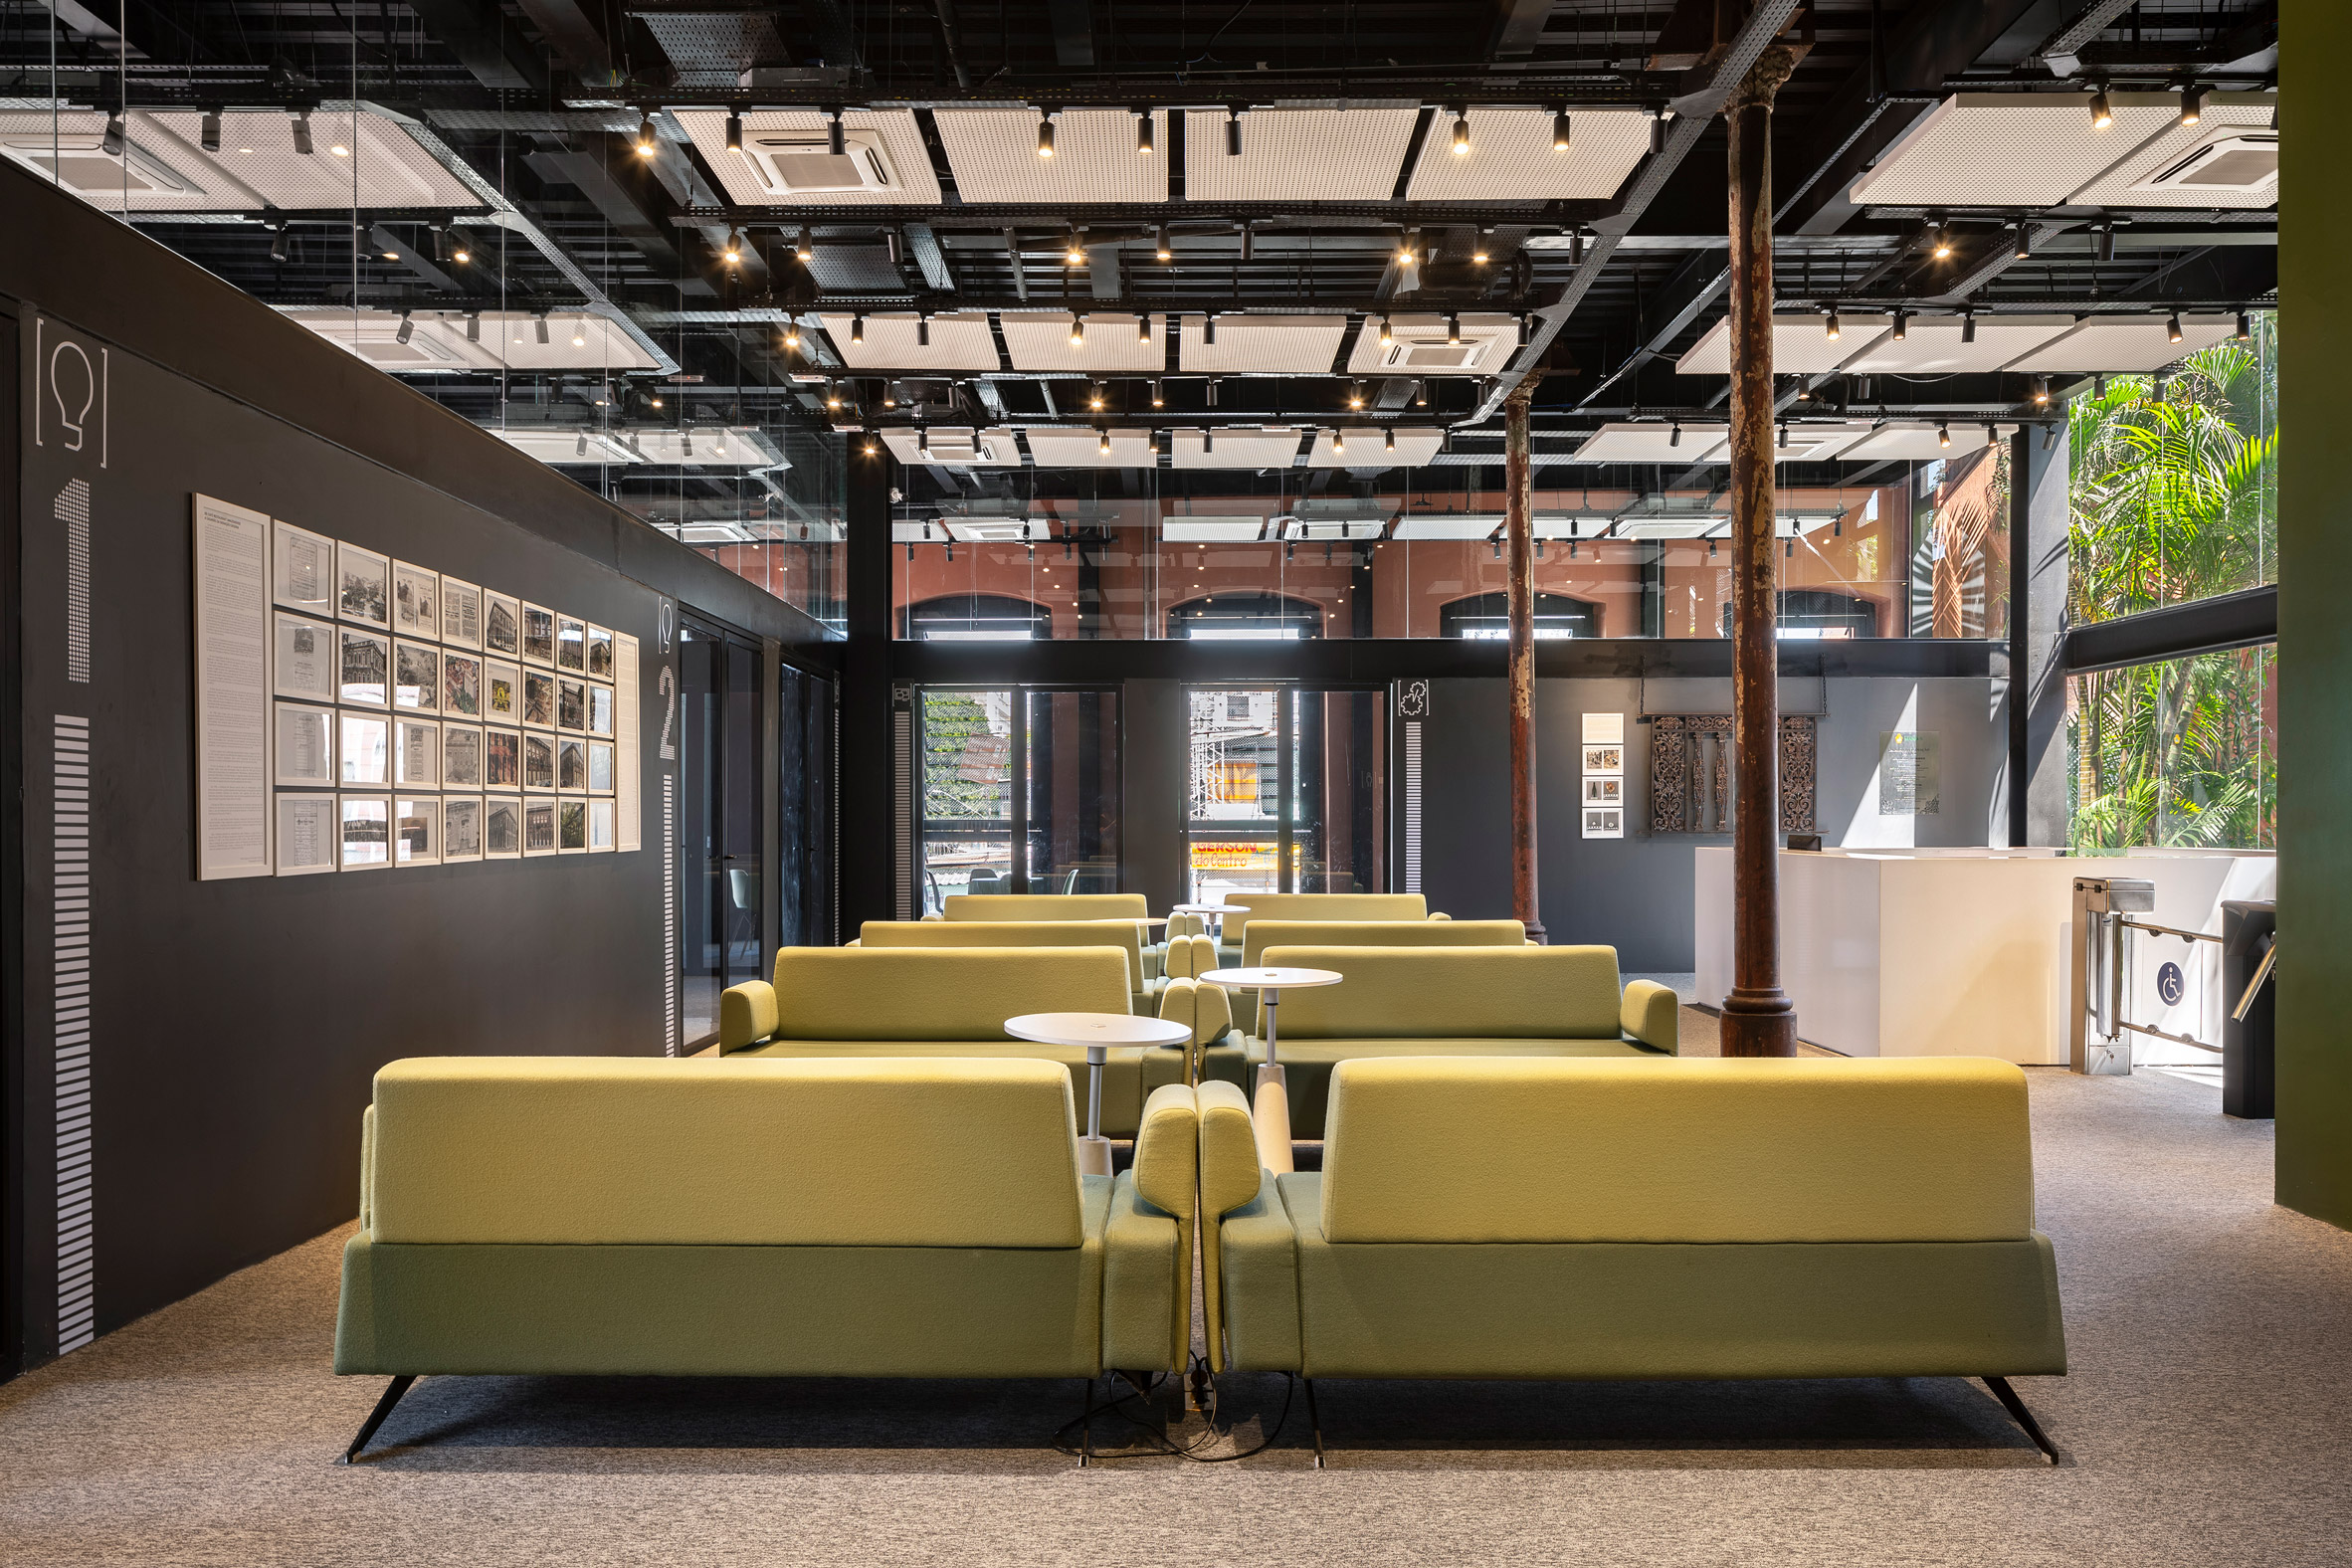 Co-working space in Brazil